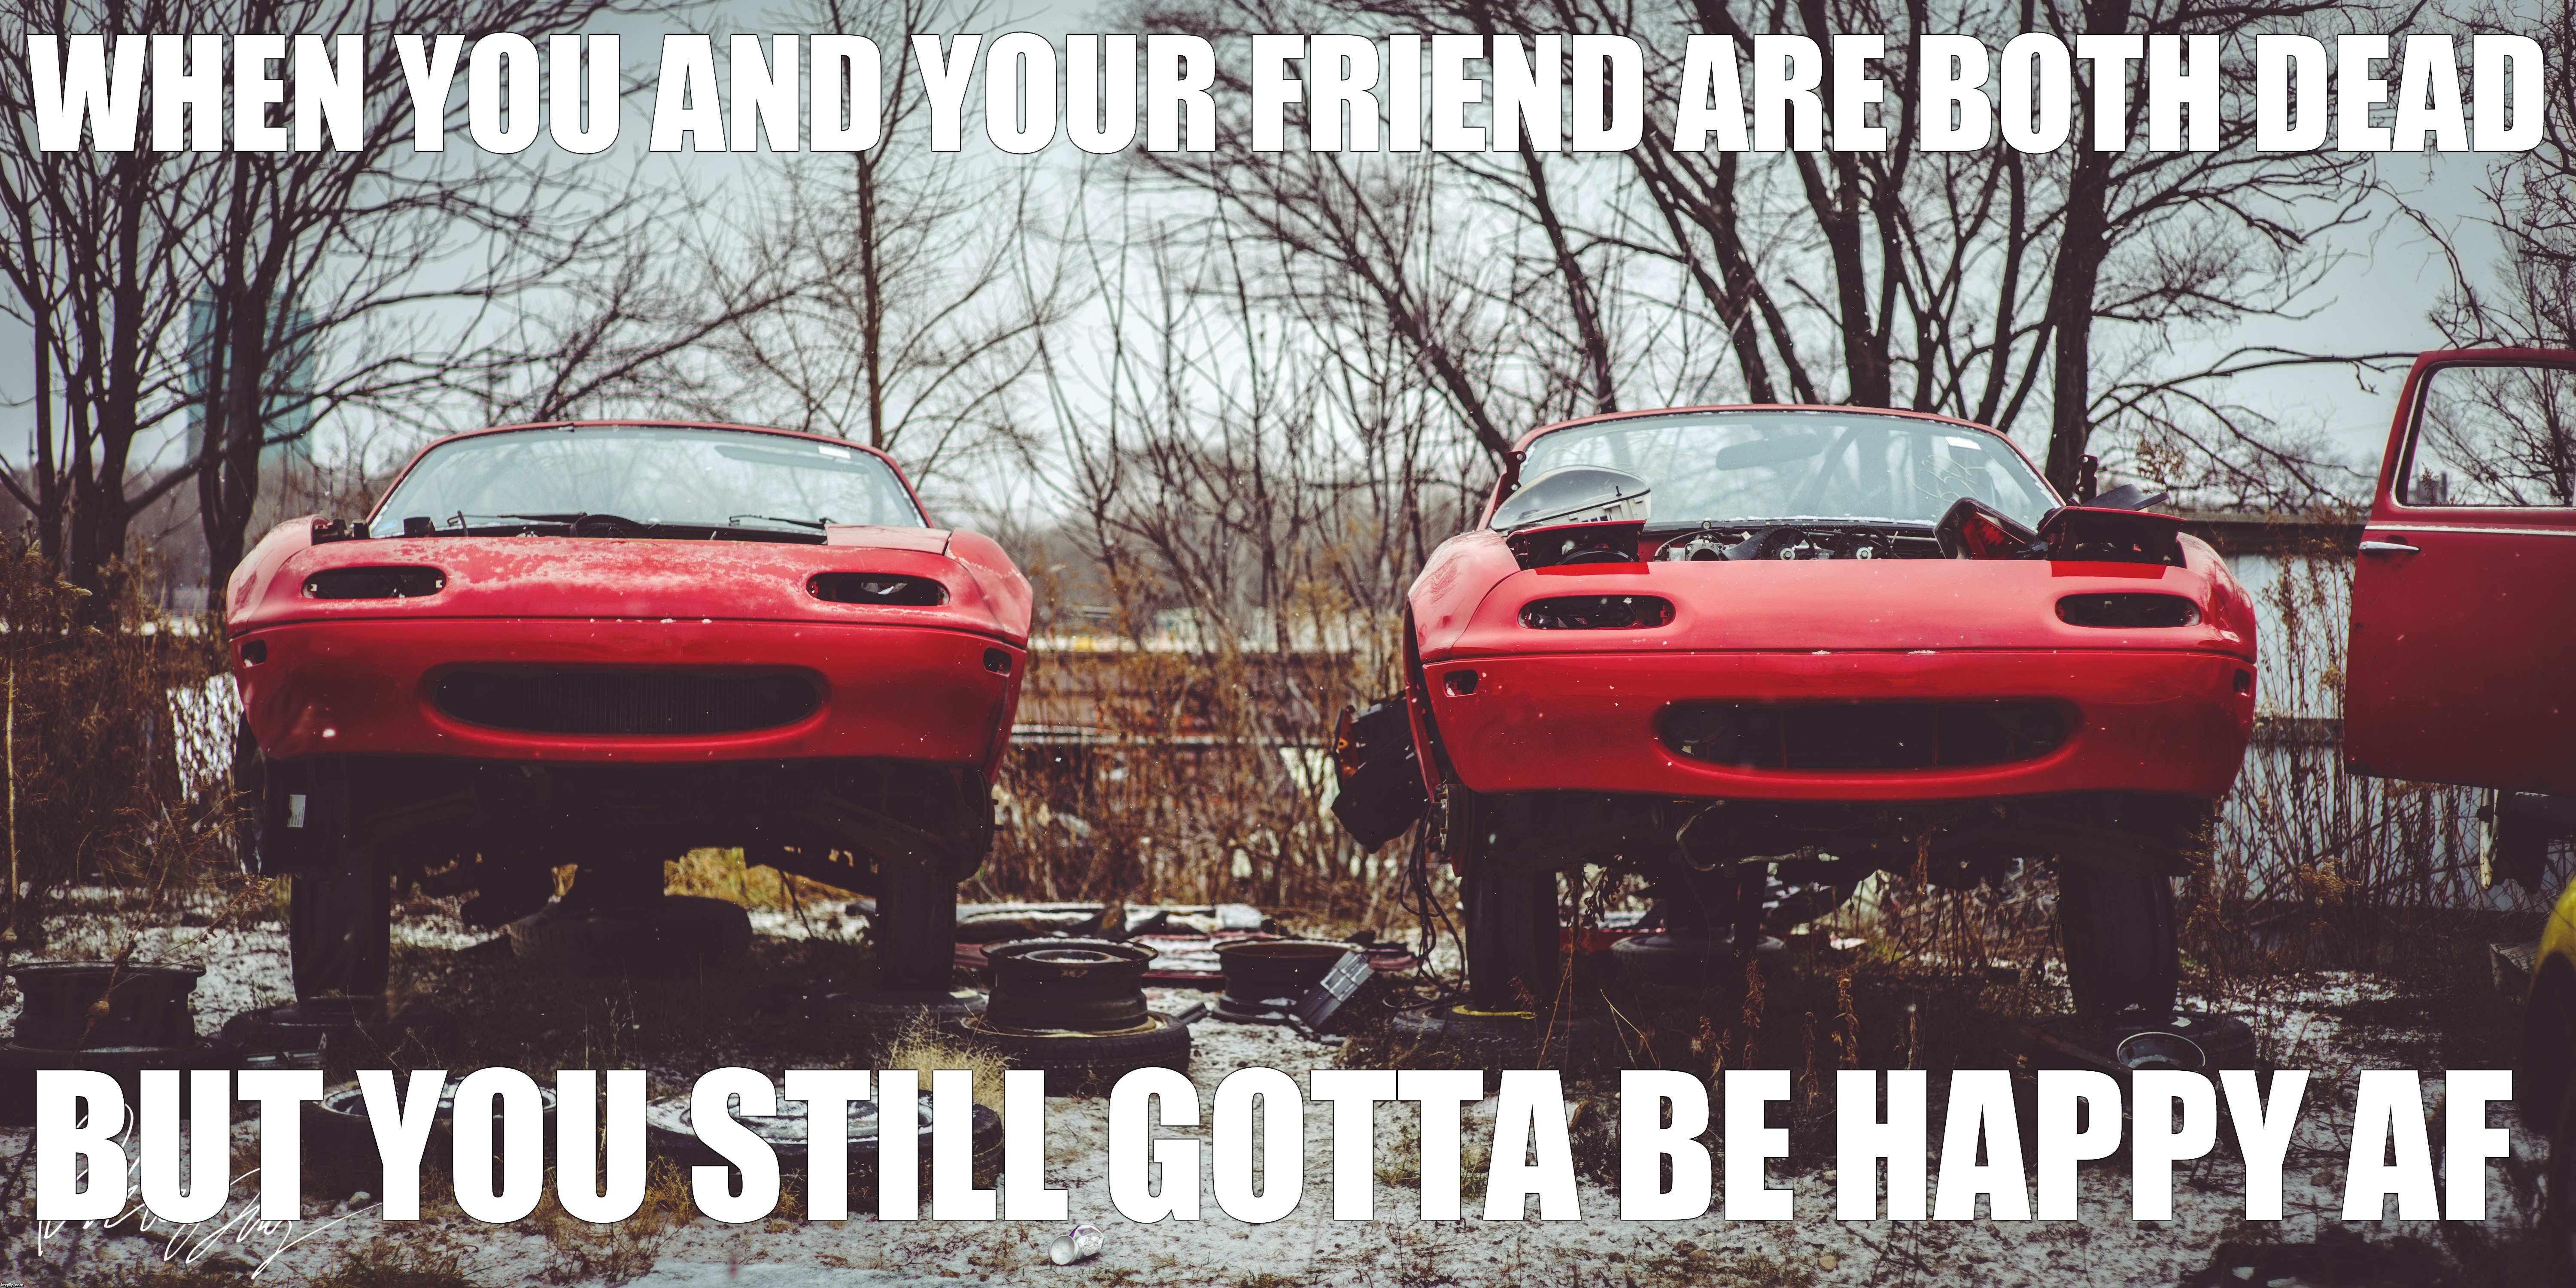 b3c7d7f0cdc7f92db3dd52450ffdd6be just miata things? mazda original content